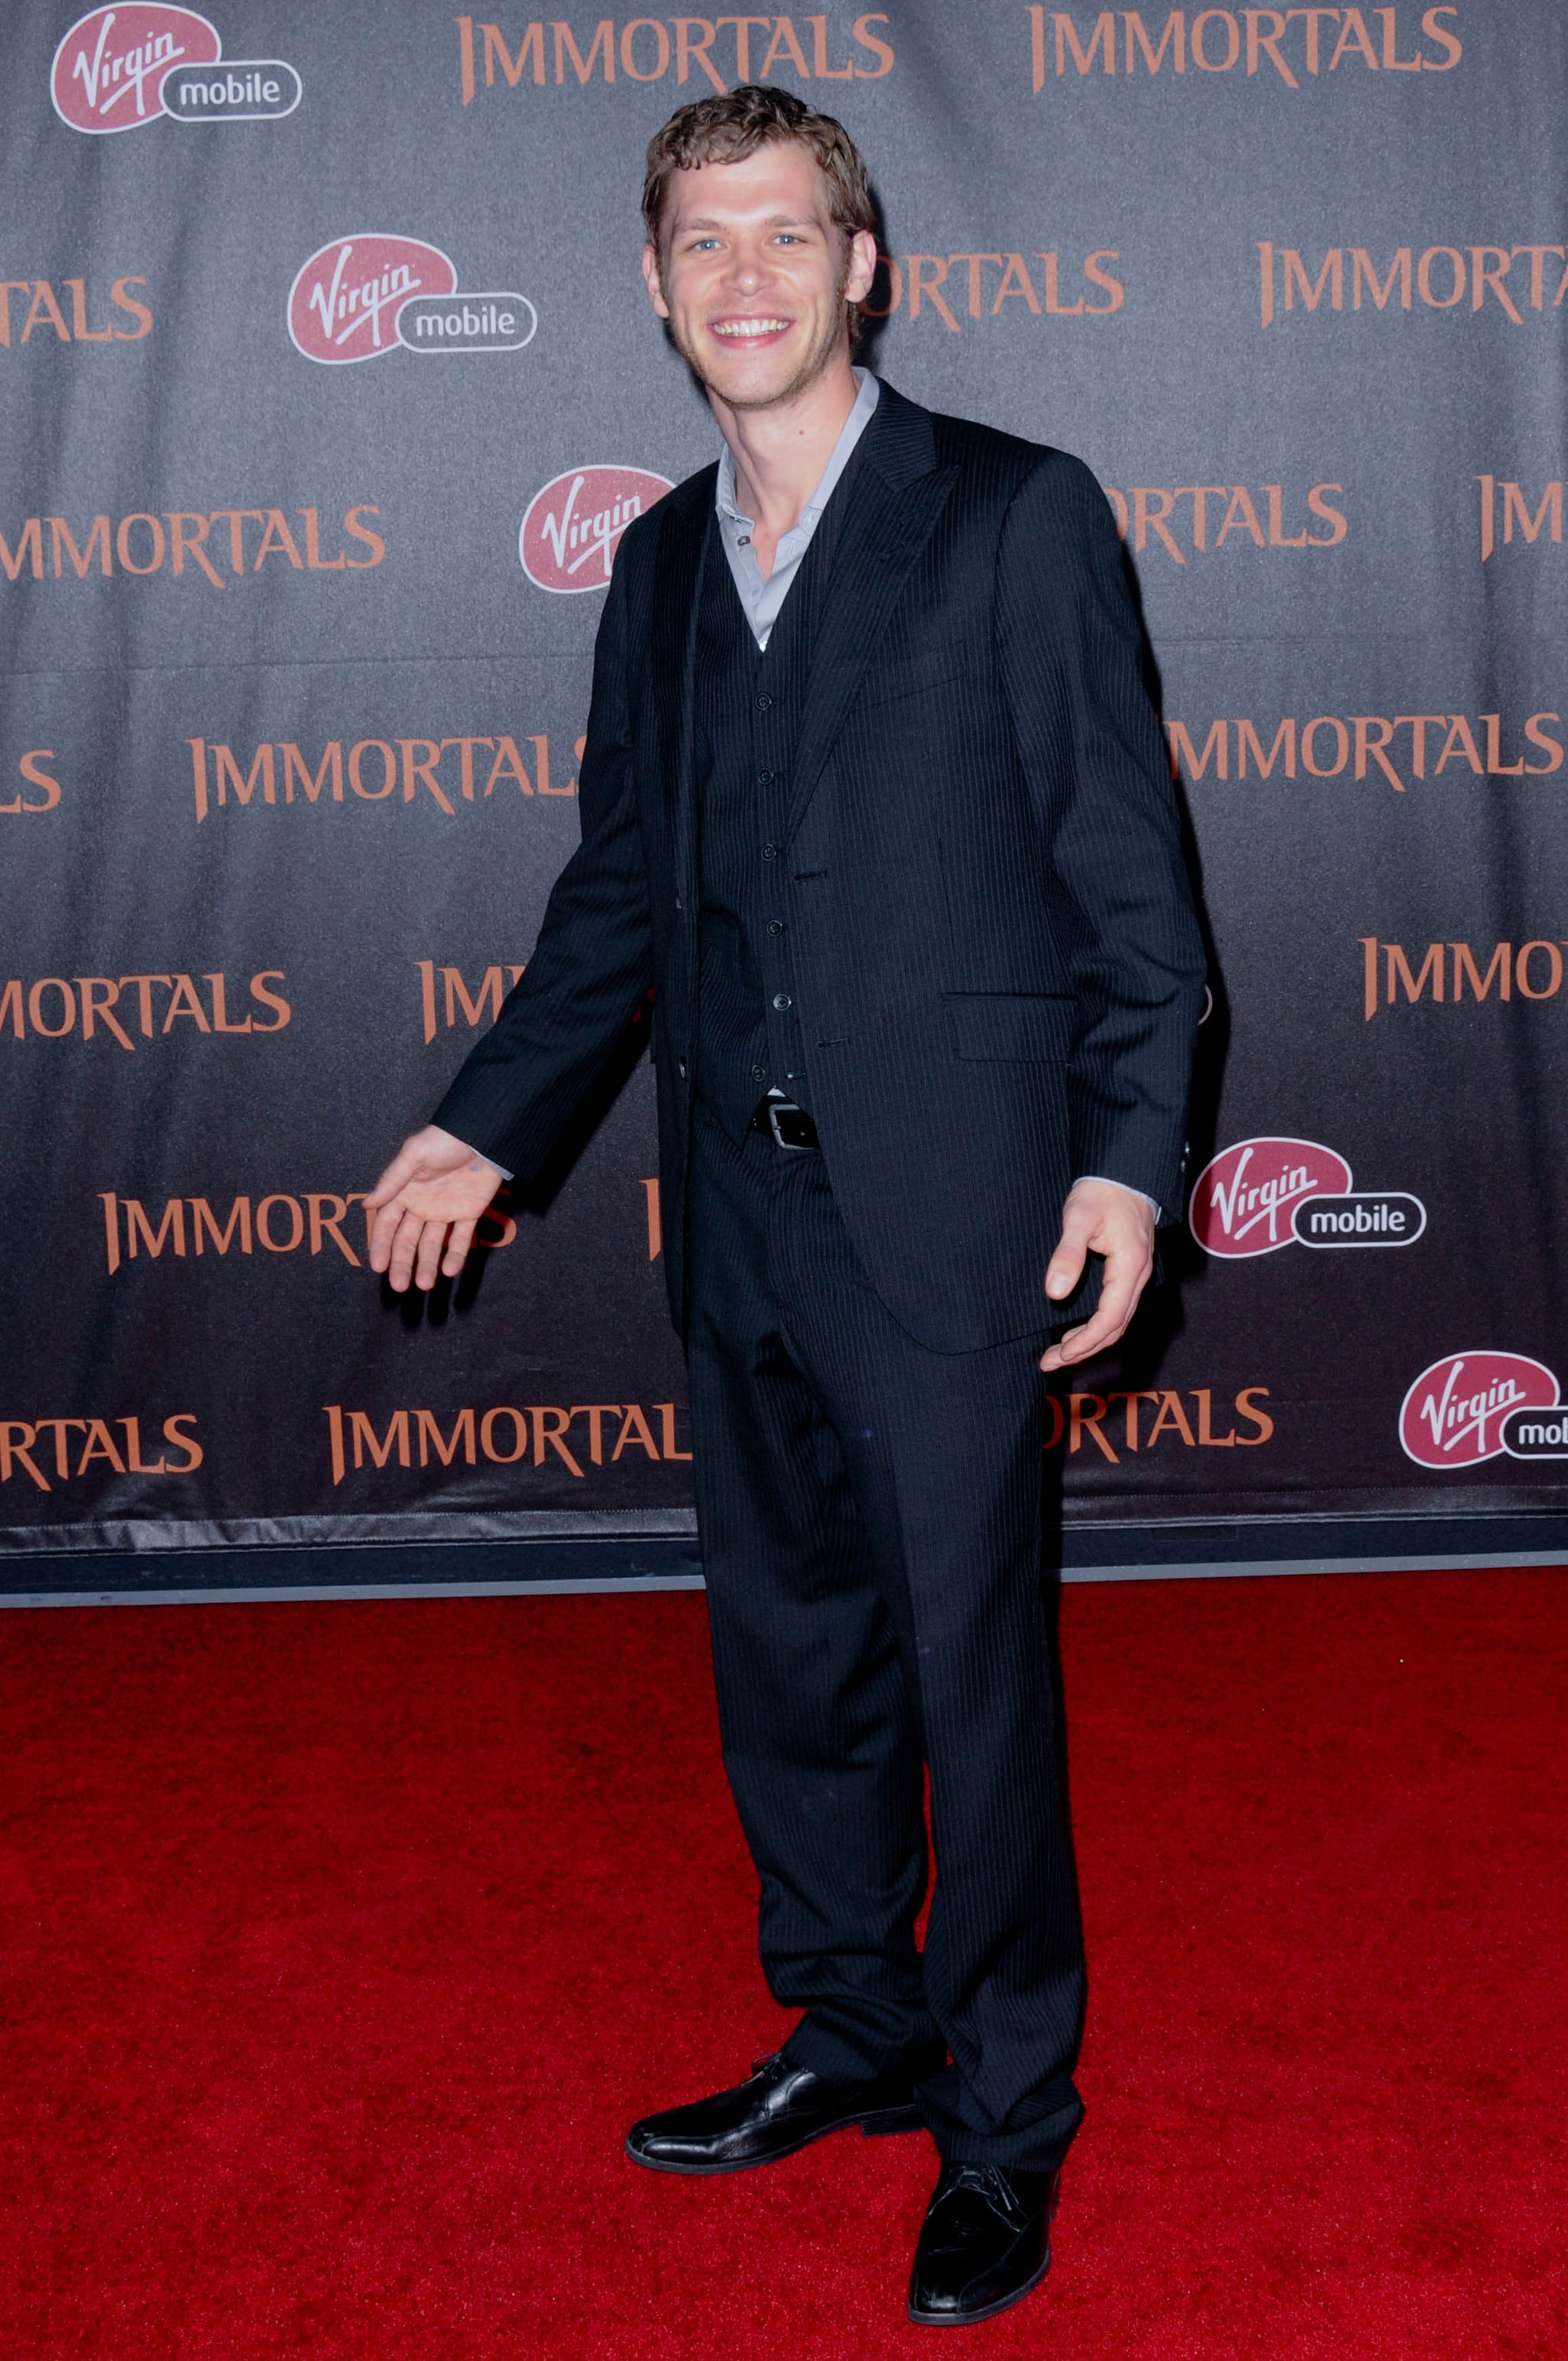 Joseph Morgan arrived at the LA premiere of Immortals.